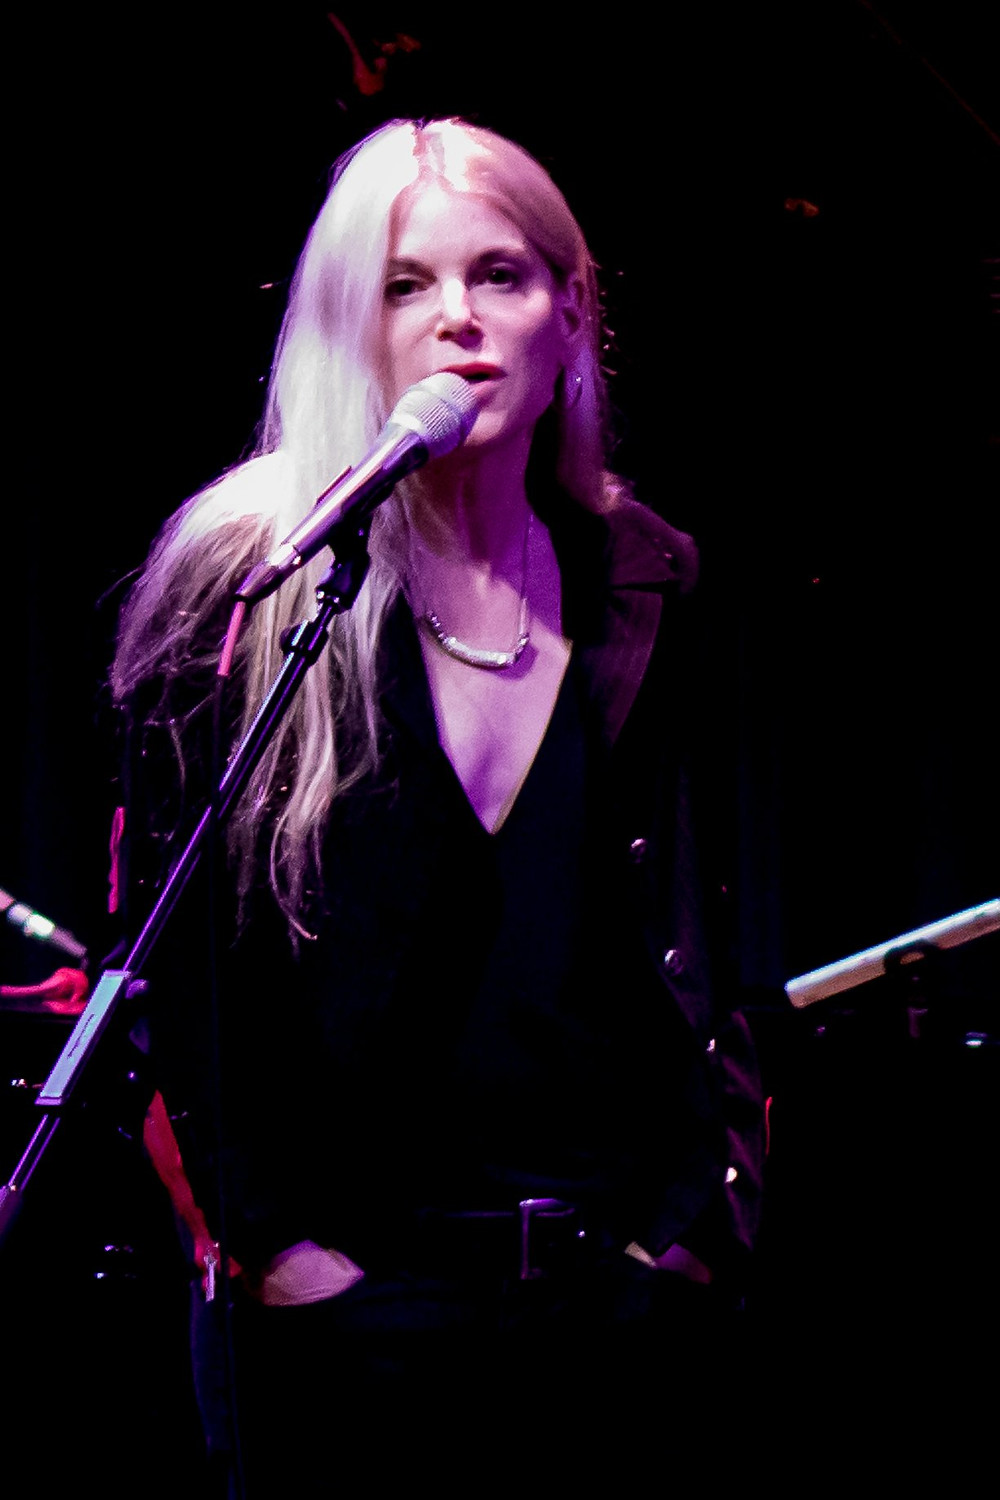 Thanks to Gene Mock for the photo, taken at Freight and Salvage, in Berkeley, CA.